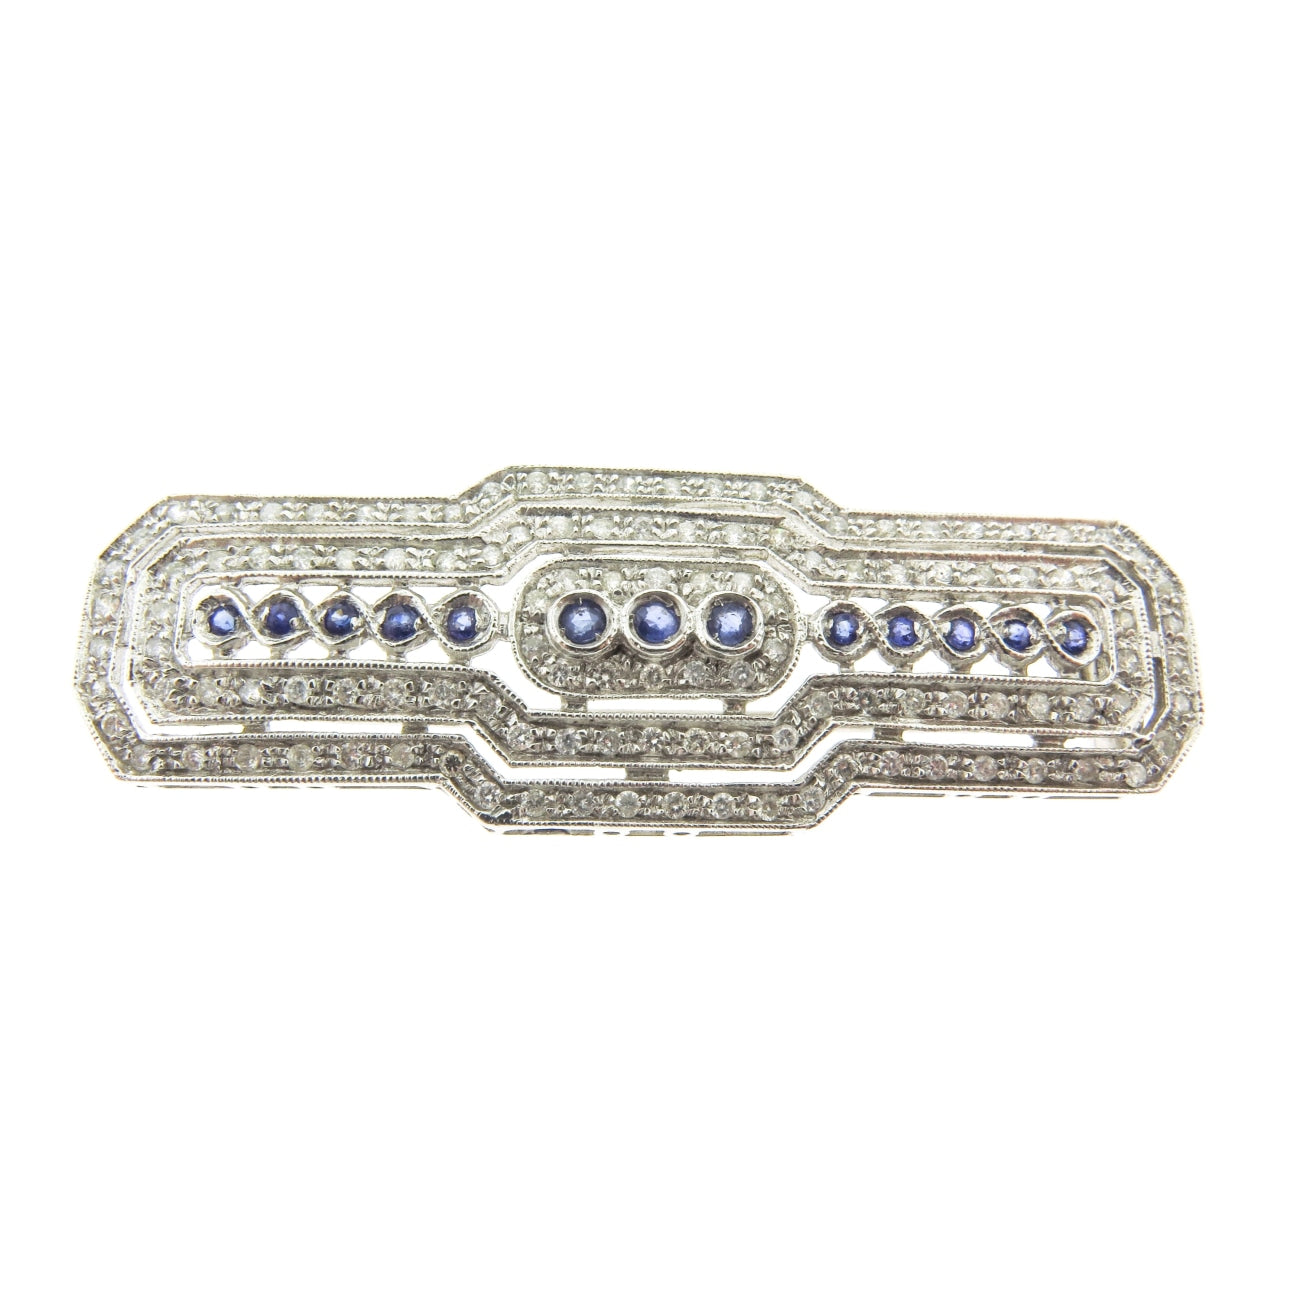 Estate Jewelry Estate Jewelry - Sapphire & Diamond Bar Brooch | Manfredi Jewels